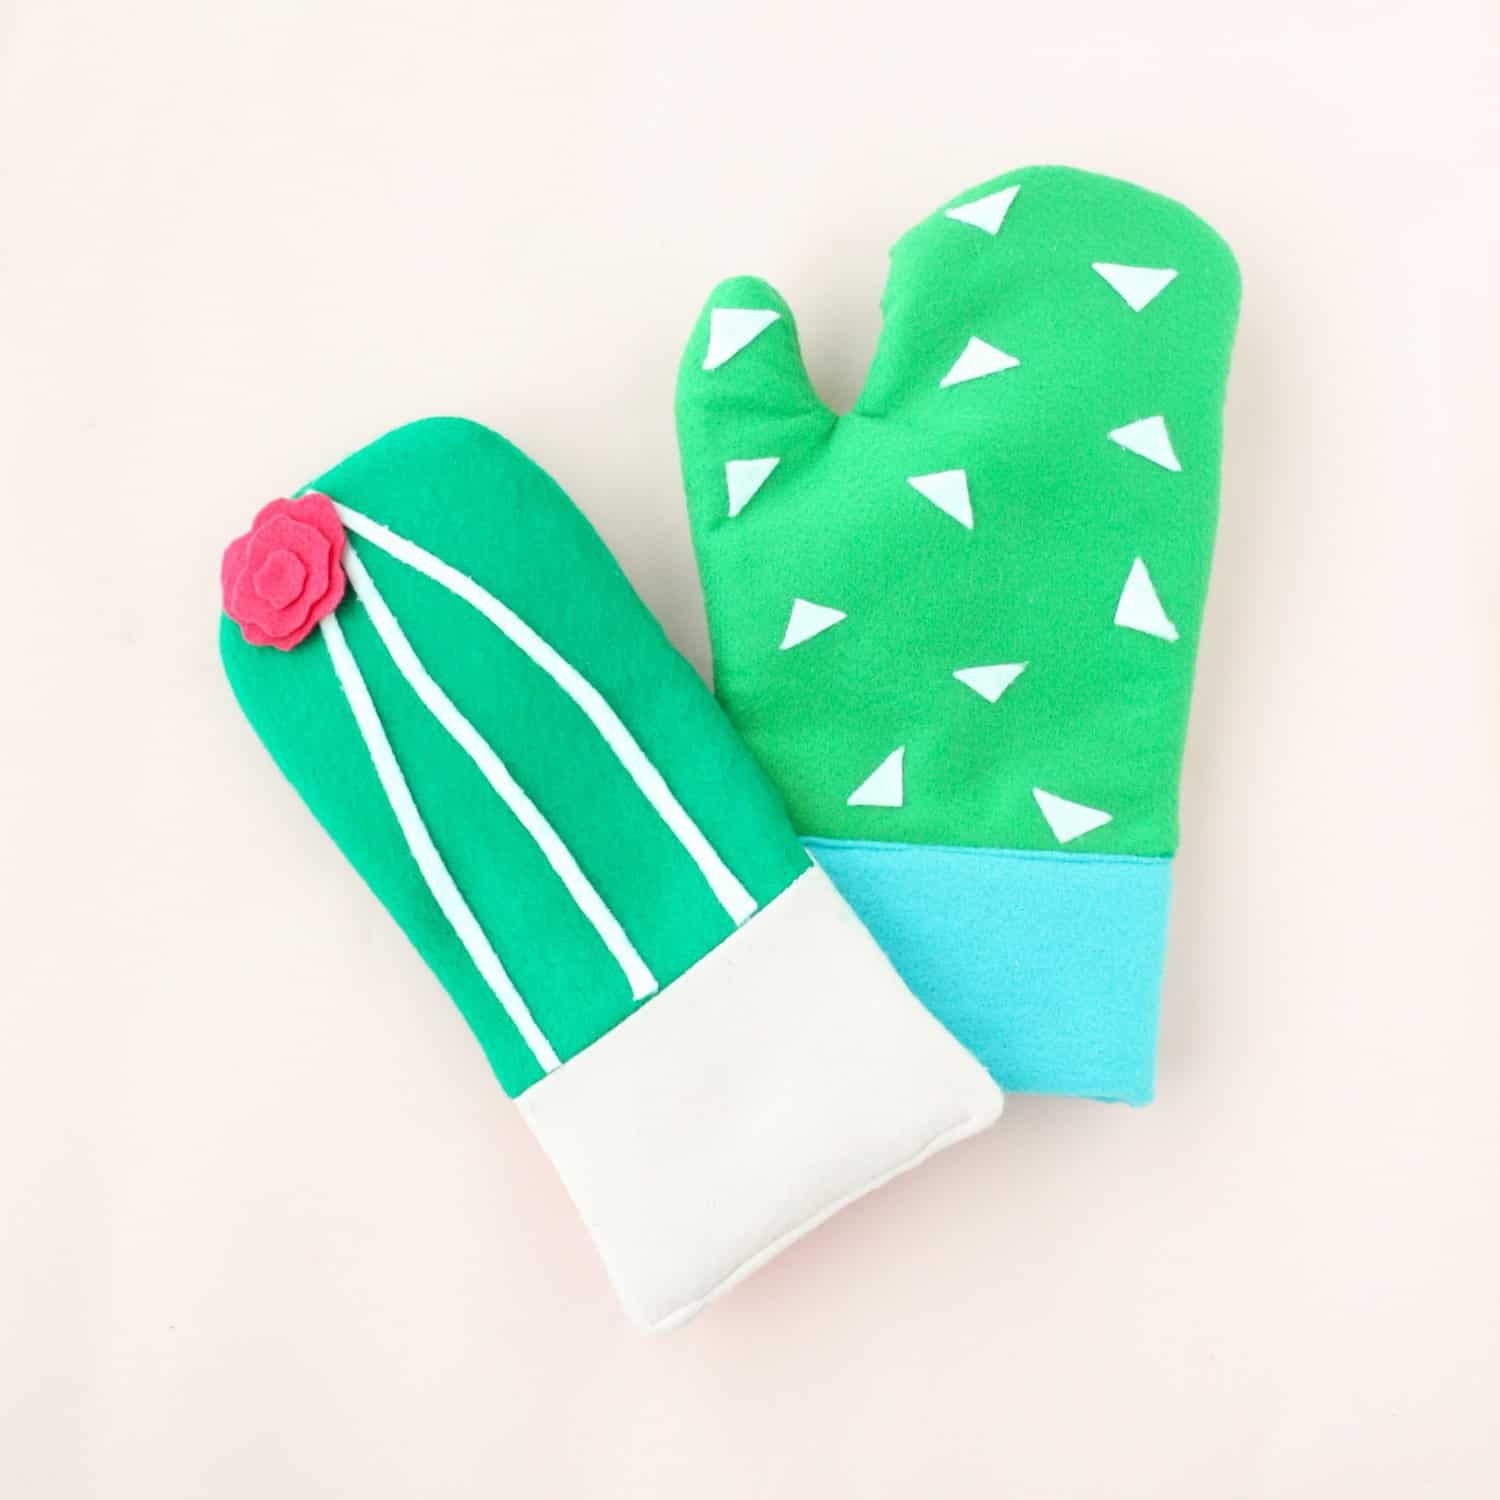 DIY-Cactus-Oven-Mitts-Click-Through-for-Tutorial